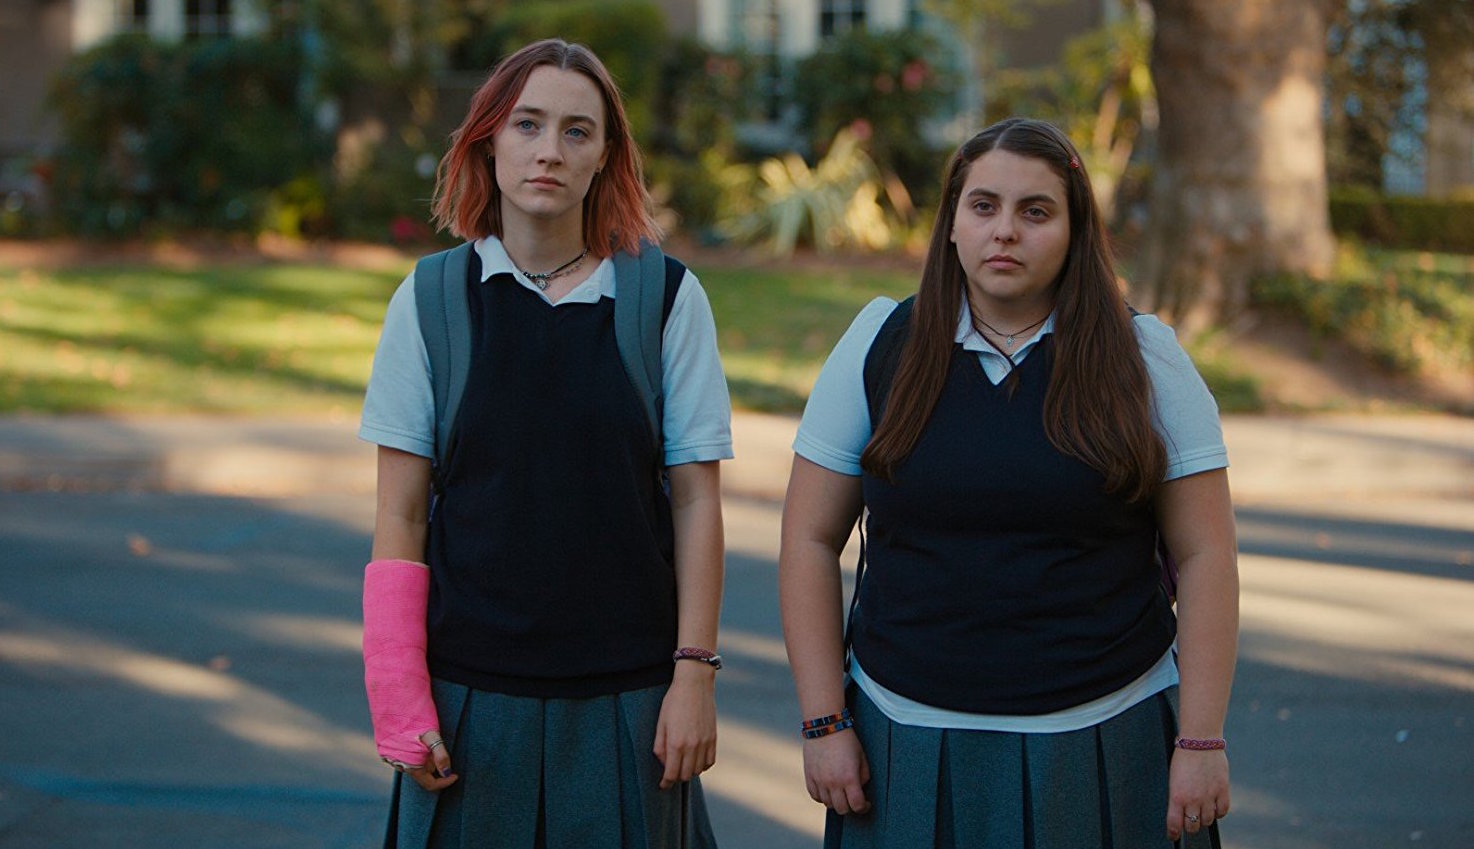 Saoirse Ronan (left, pictured with Beanie Feldstein) stars in